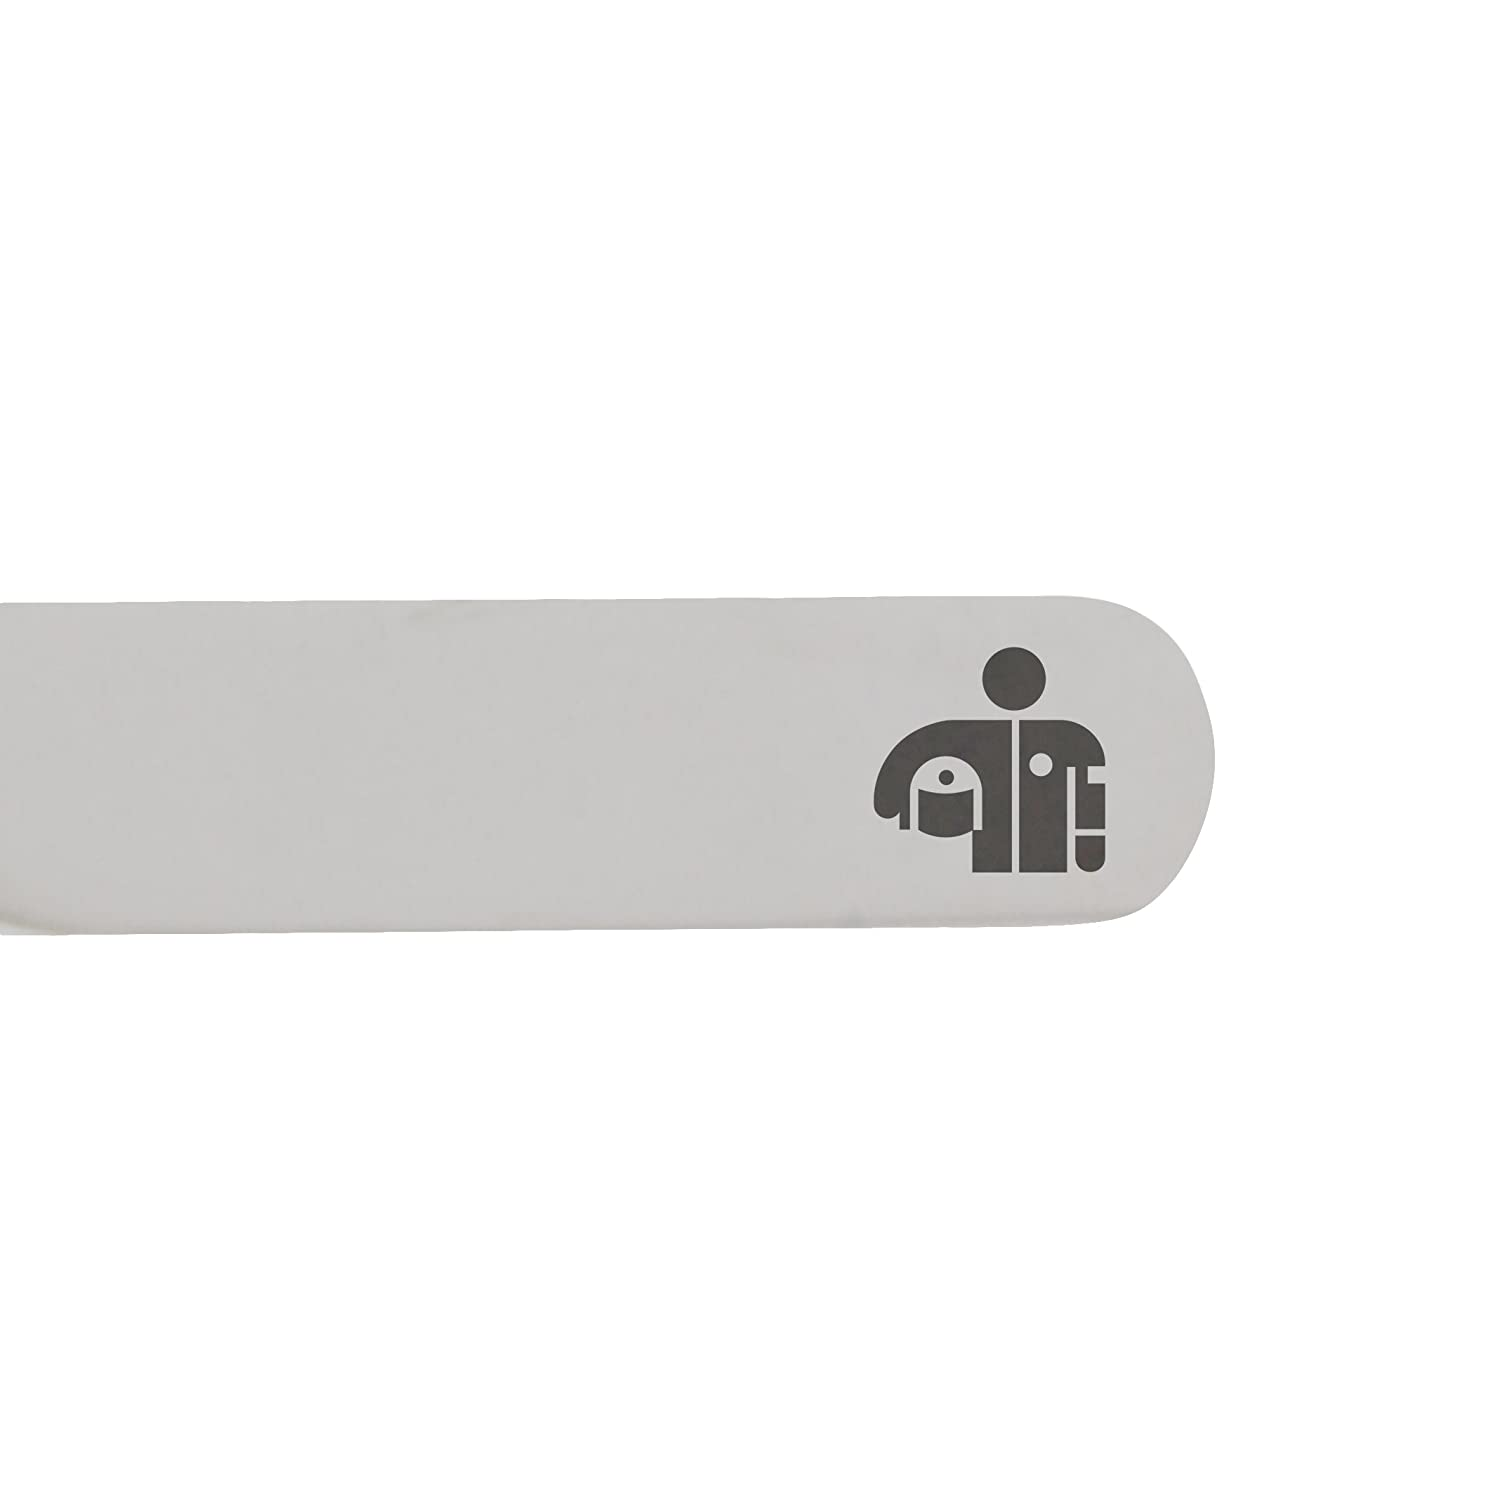 Made In USA MODERN GOODS SHOP Stainless Steel Collar Stays With Laser Engraved Race Driver Design 2.5 Inch Metal Collar Stiffeners